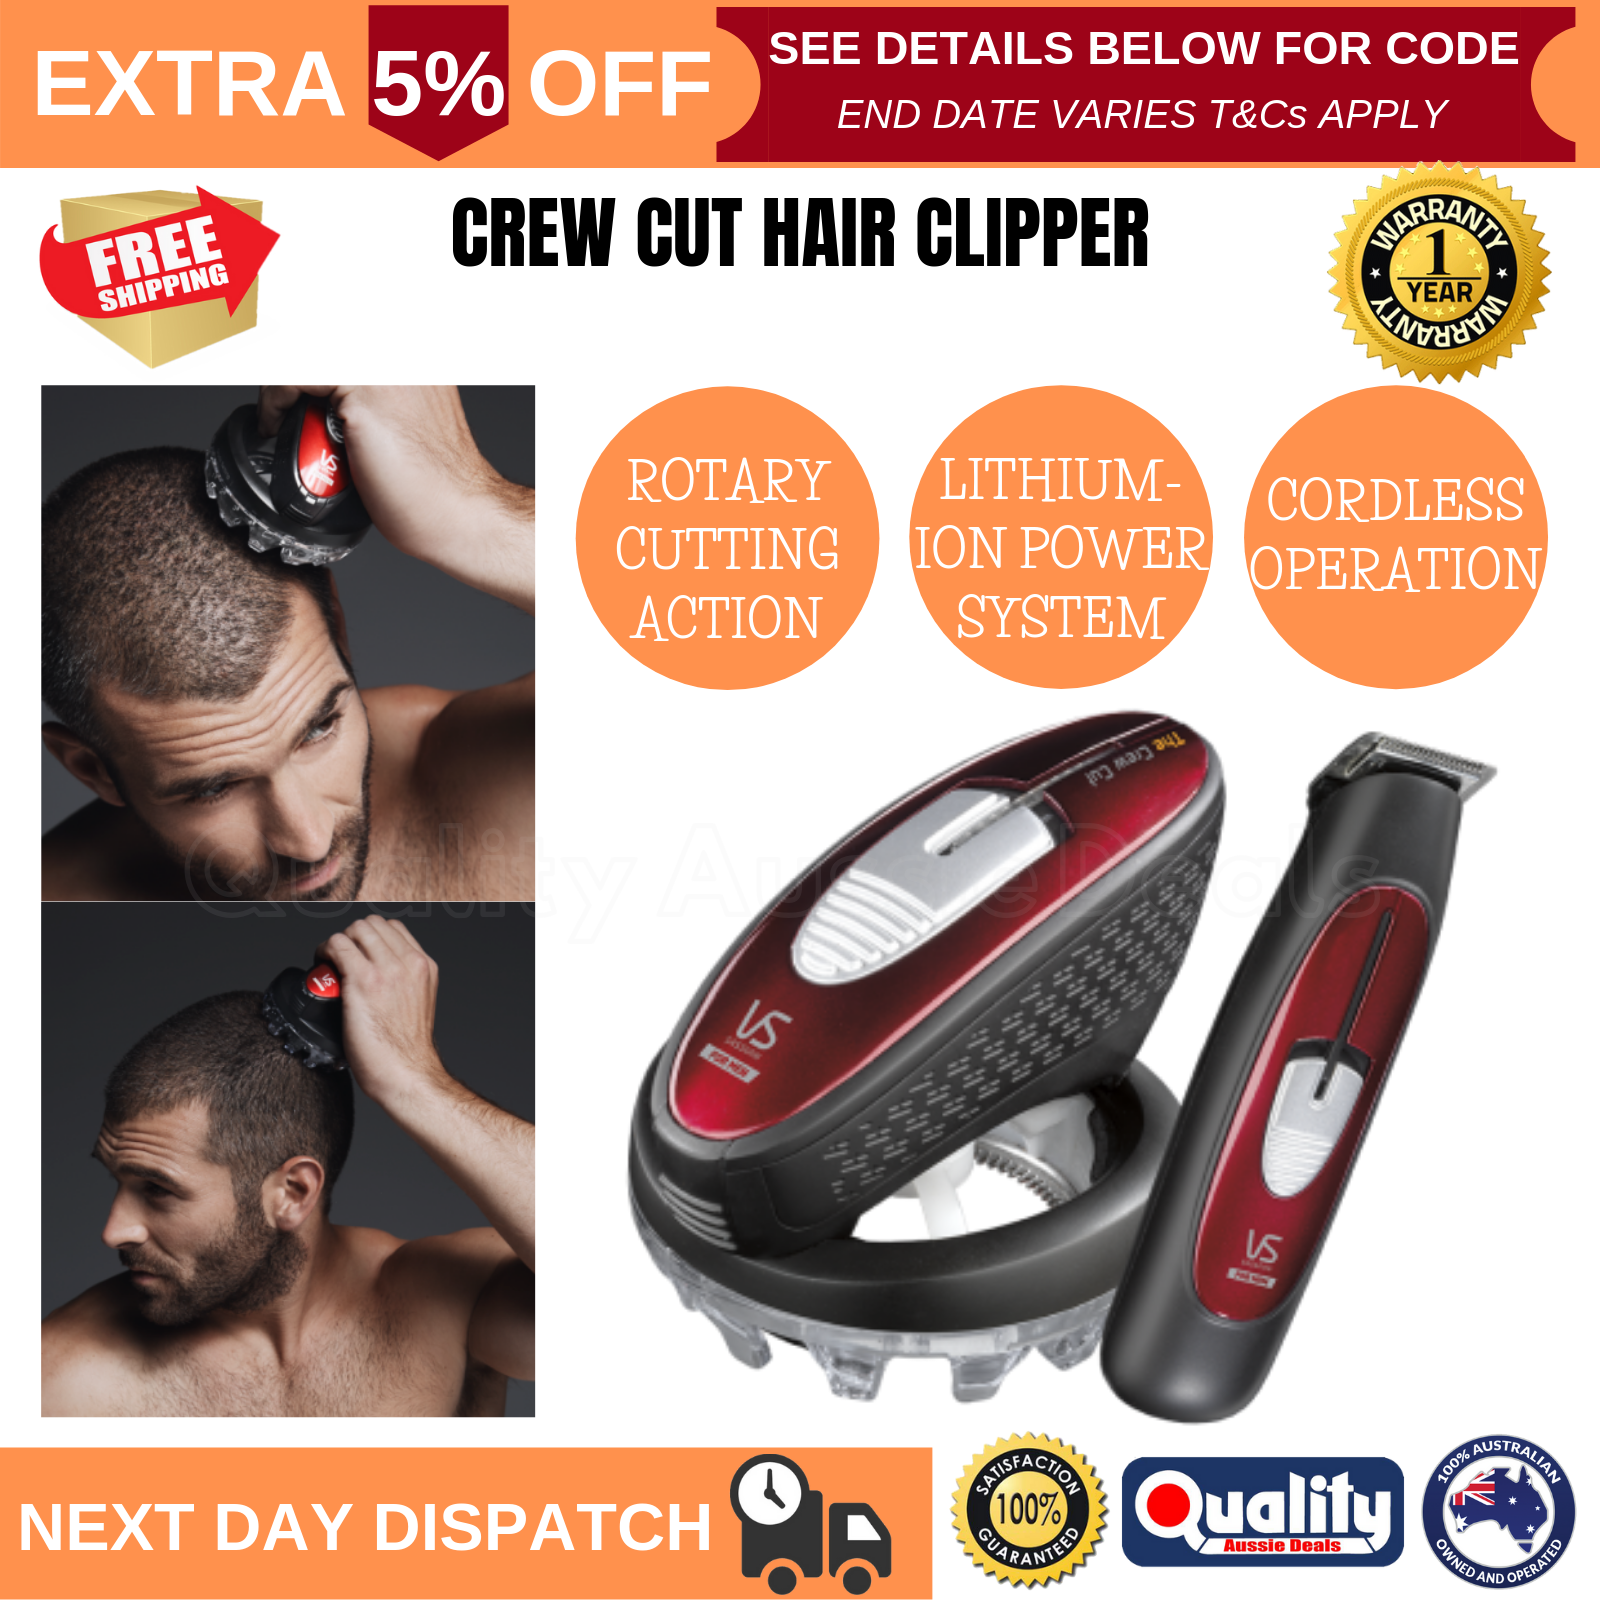 Details about Mens Hair Clippers Trimmer Crew Cut Hair Home Cutting  Grooming Shaver VS Sassoon